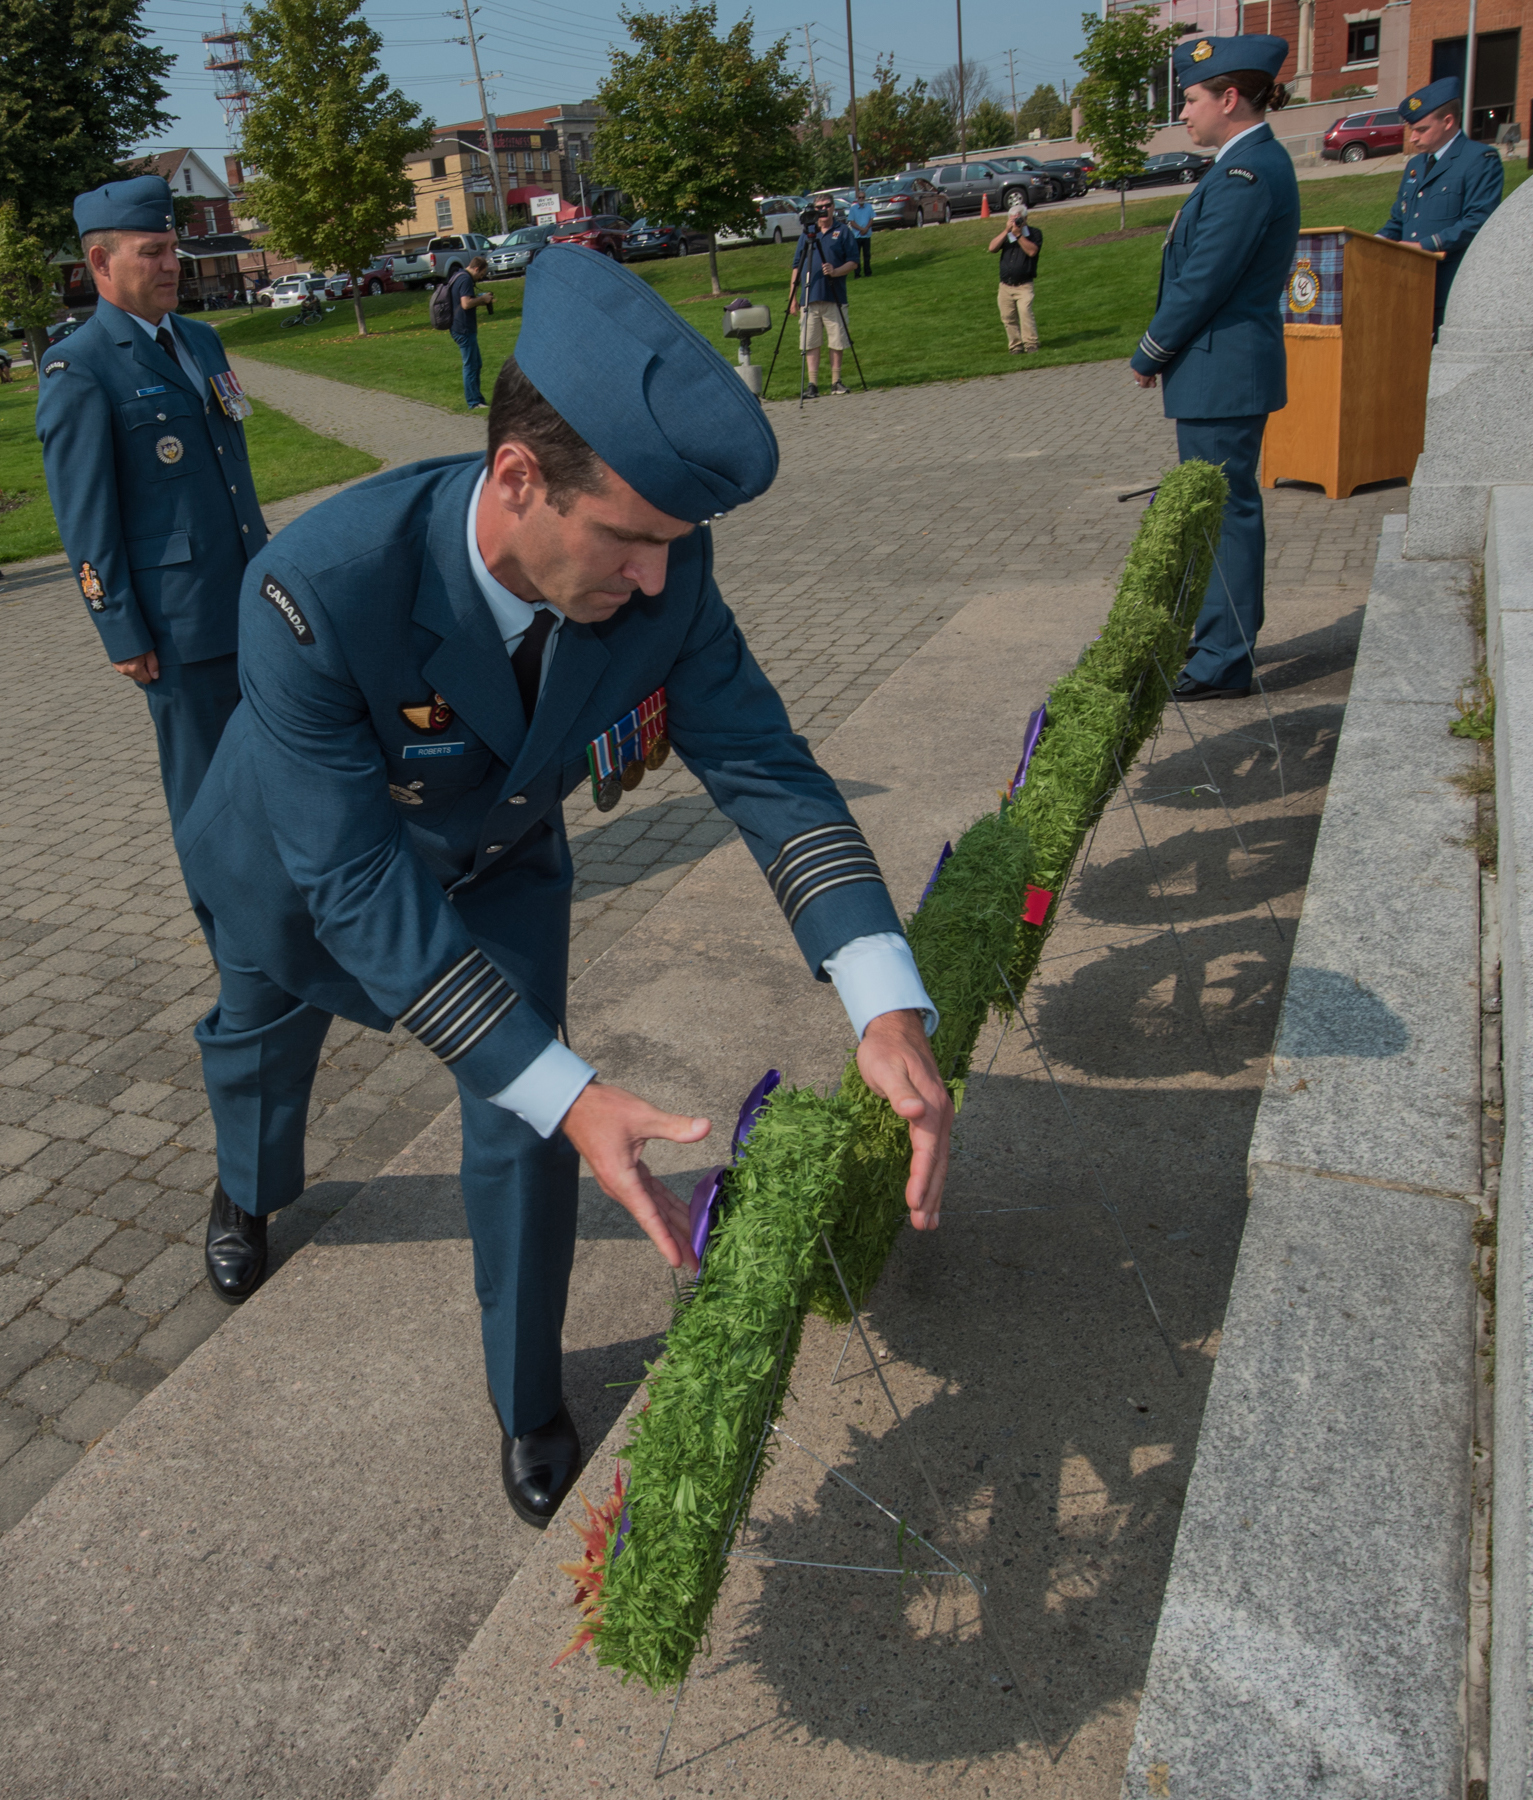 During the annual Battle of Britain ceremony at Royal Canadian Legion Branch 23 in North Bay, Ontario, 22 Wing commander Colonel Mark Roberts lays a wreath on behalf of the wing at the War Cenotaph on September 17, 2017. PHOTO: Corporal Joseph Morin, NB02-2017-0211-020